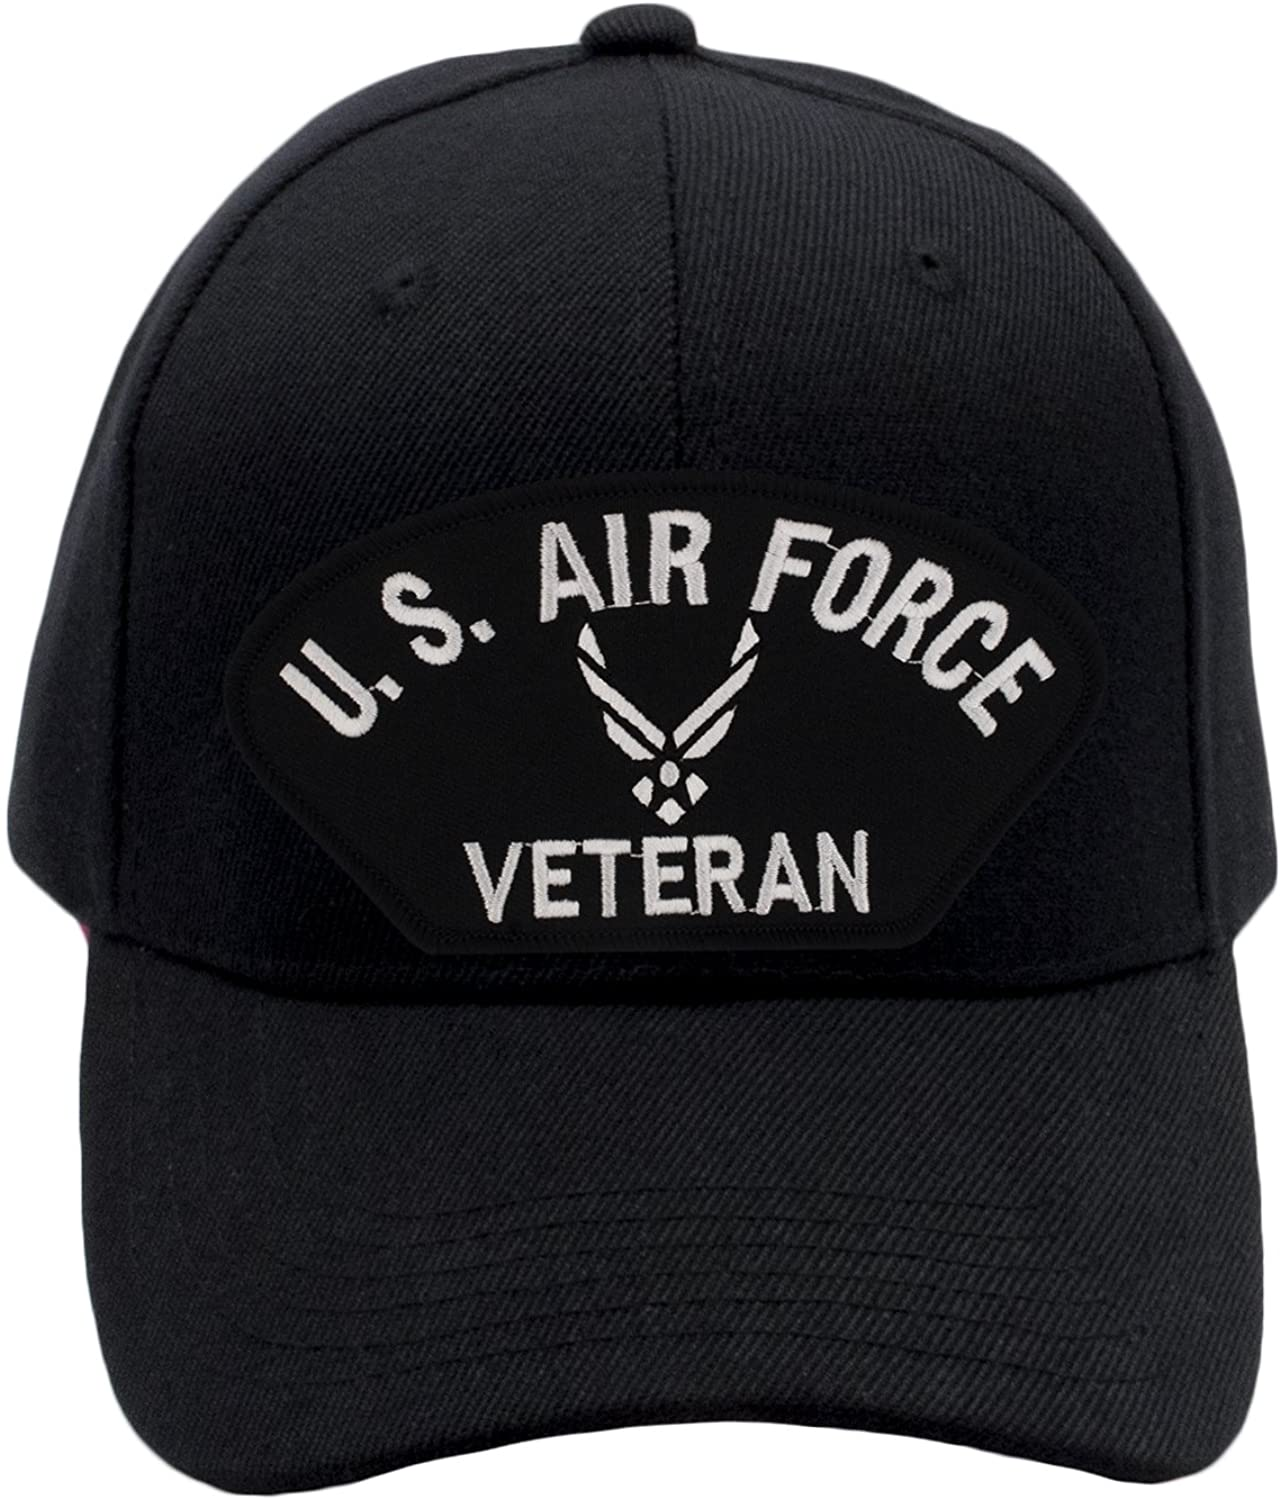 PATCHTOWN US Air Force Veteran Hat/Ballcap Adjustable One Size Fits Most (Multiple Colors & Styles)